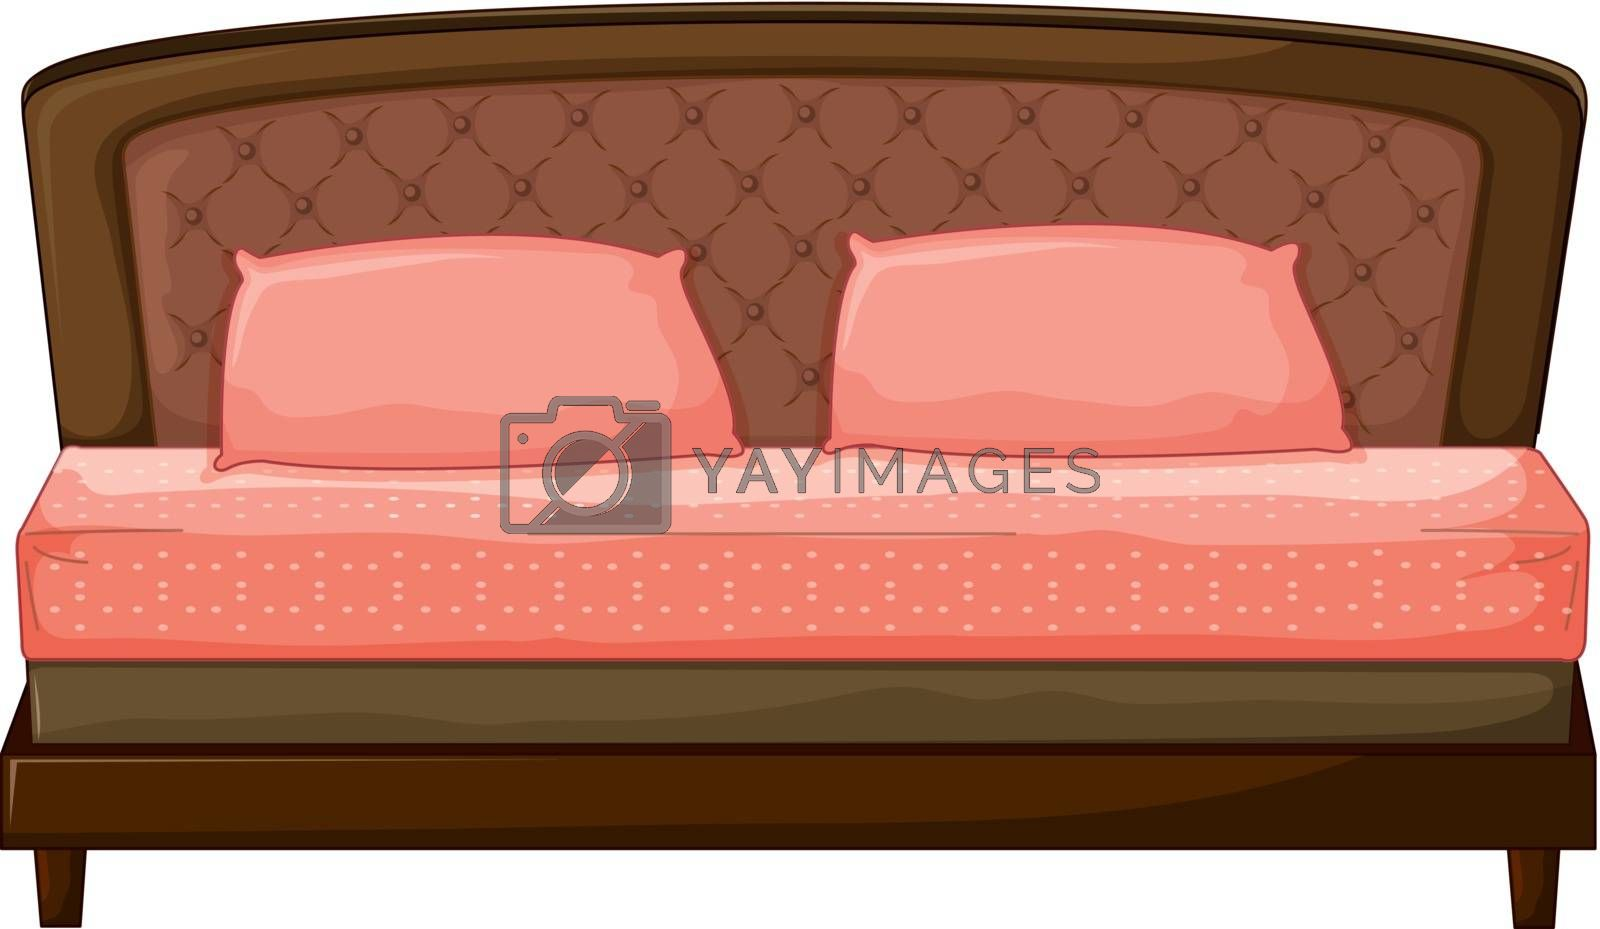 Illustration of a sofa-set on a white background